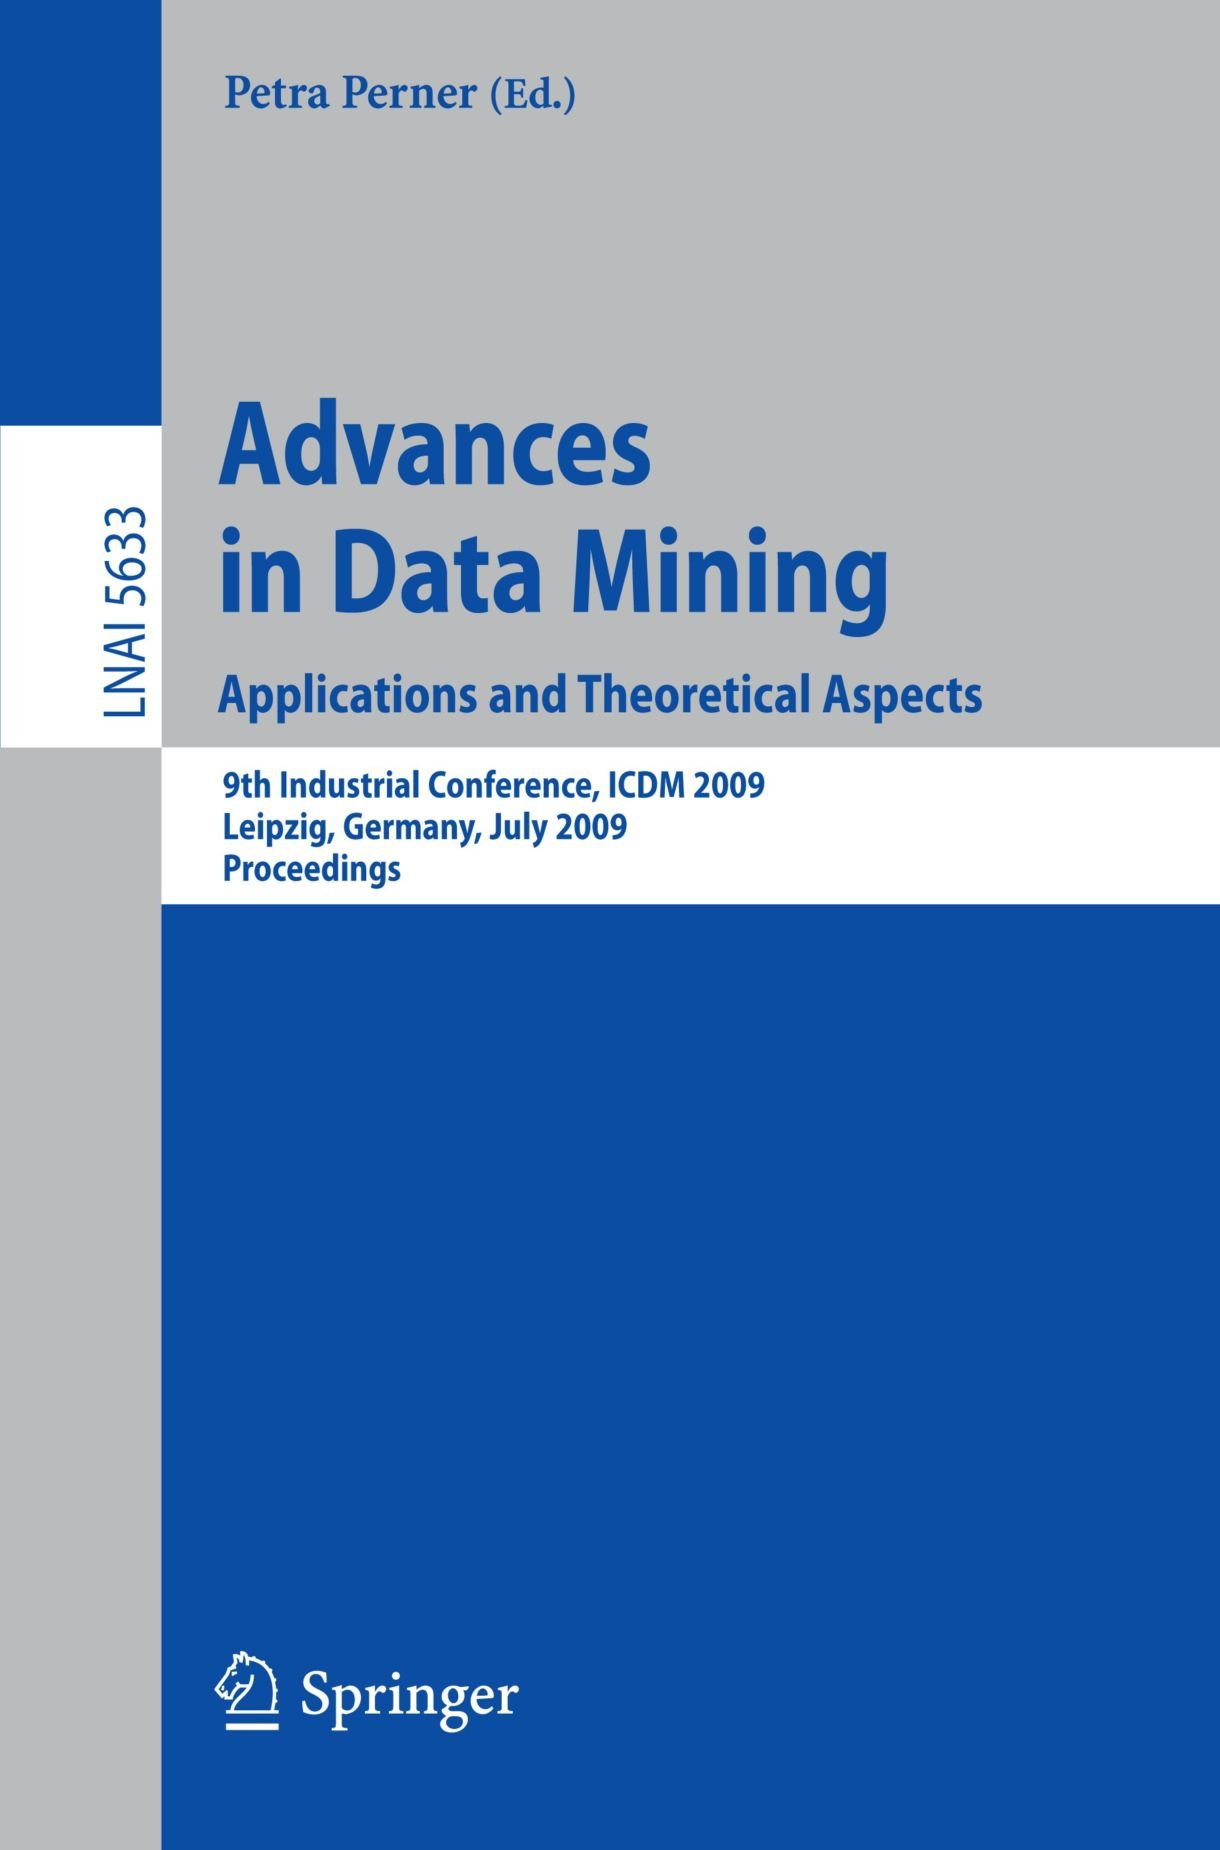 Advances in Data Mining. Applications and Theoretical Aspects: 9th Industrial Conference, ICDM 2009, Leipzig, Germany, July 20 - 22, 2009. Proceedings (Lecture Notes in Computer Science)